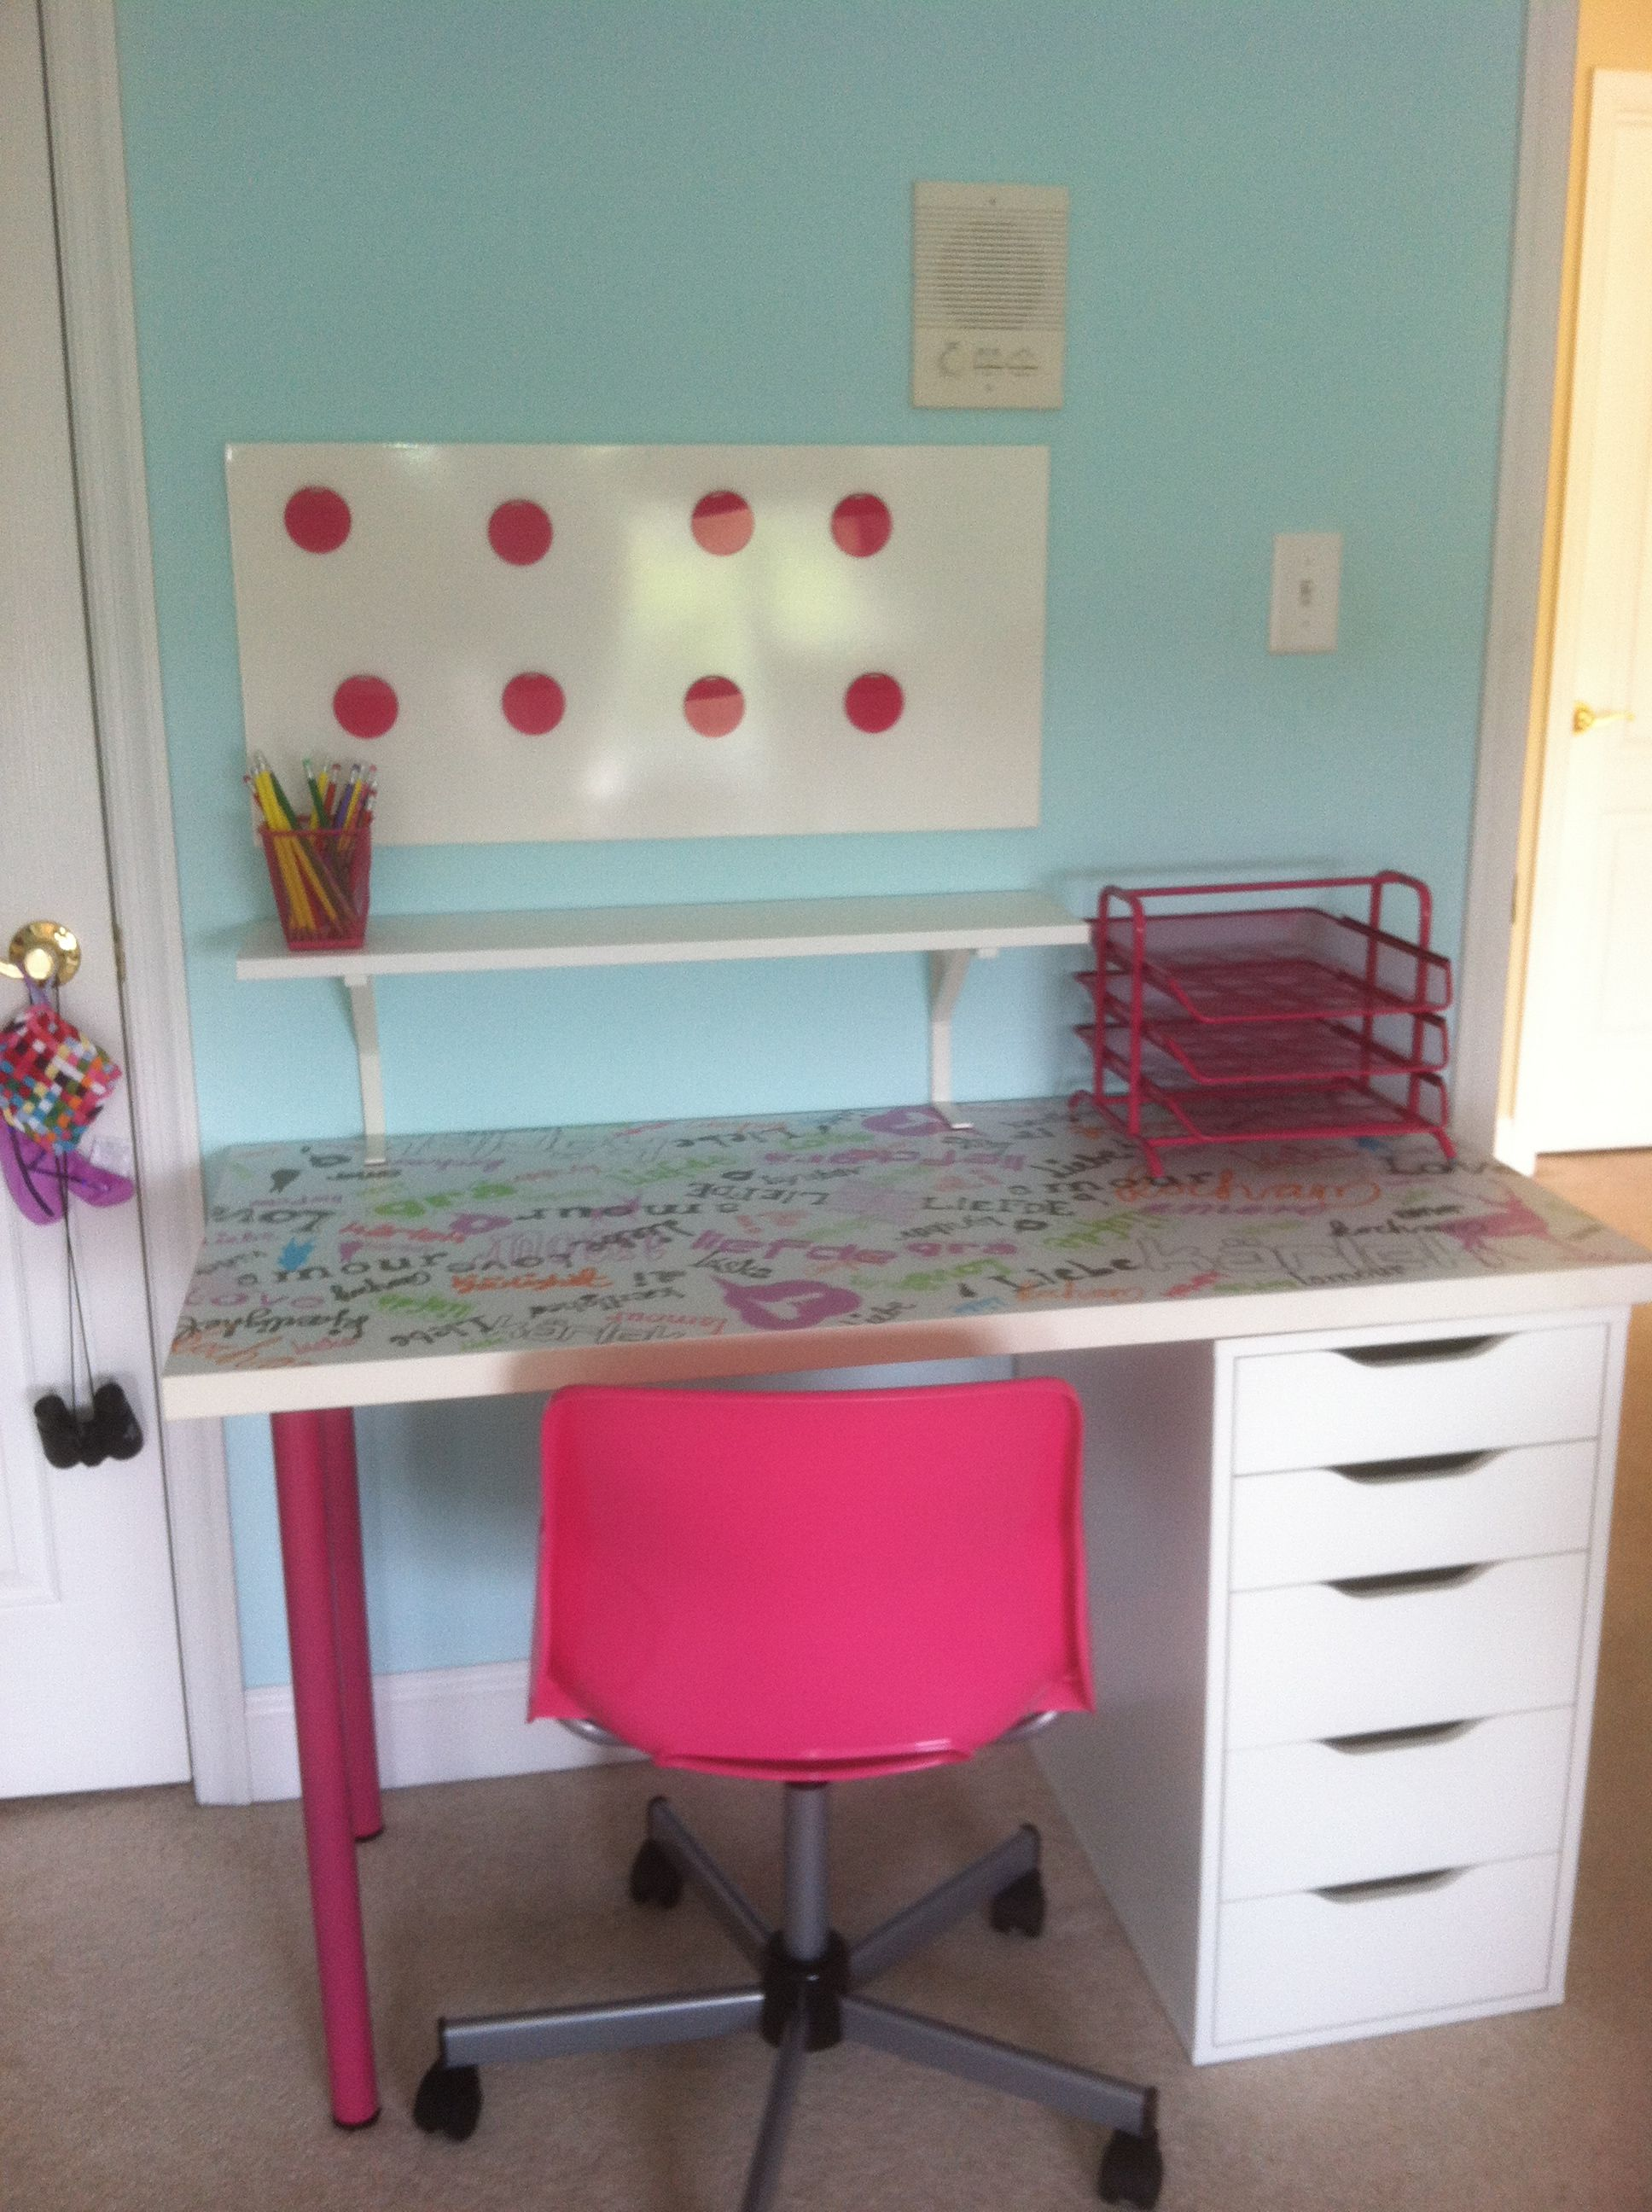 Our resident artist Katie's (age 7) new desk and art space ...